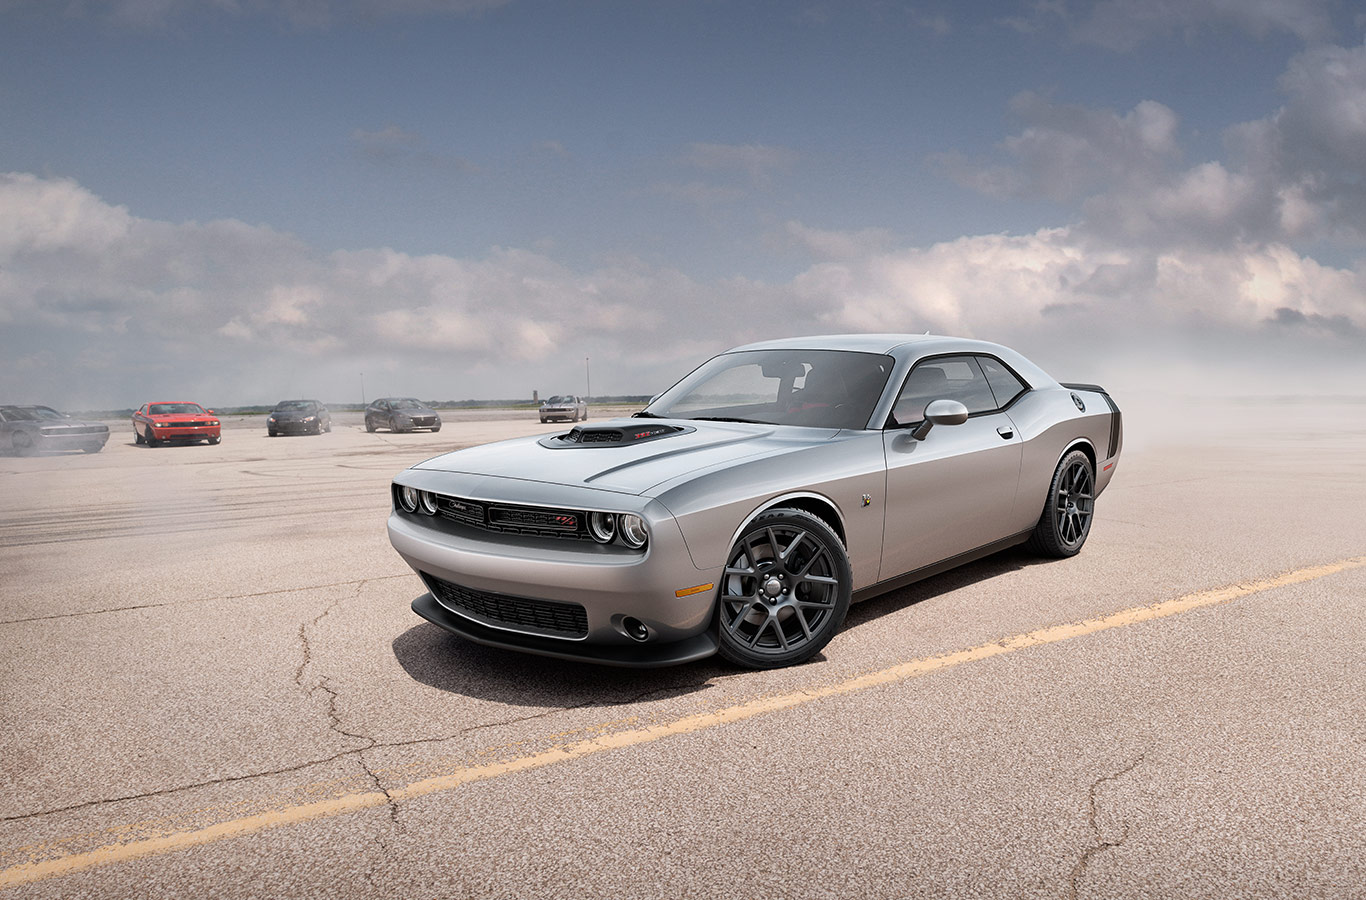 2015 Dodge Challenger Wallpaper picture size 1366x900 posted by 1366x900